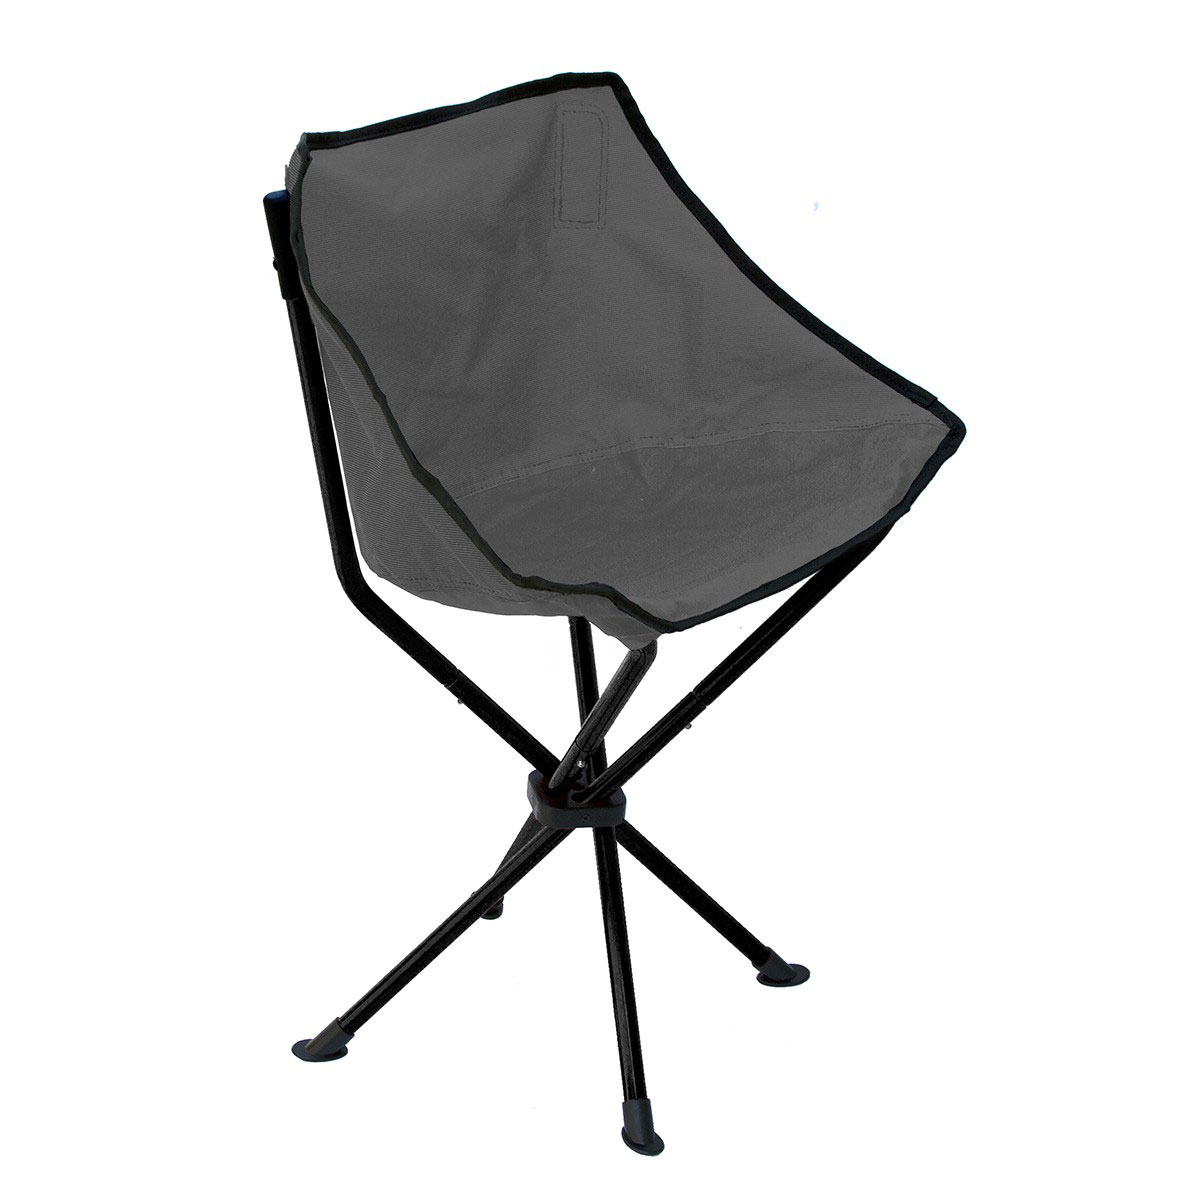 Travel Chair Travelchair 2989bk The Wombat Fold And Go On Sale Free